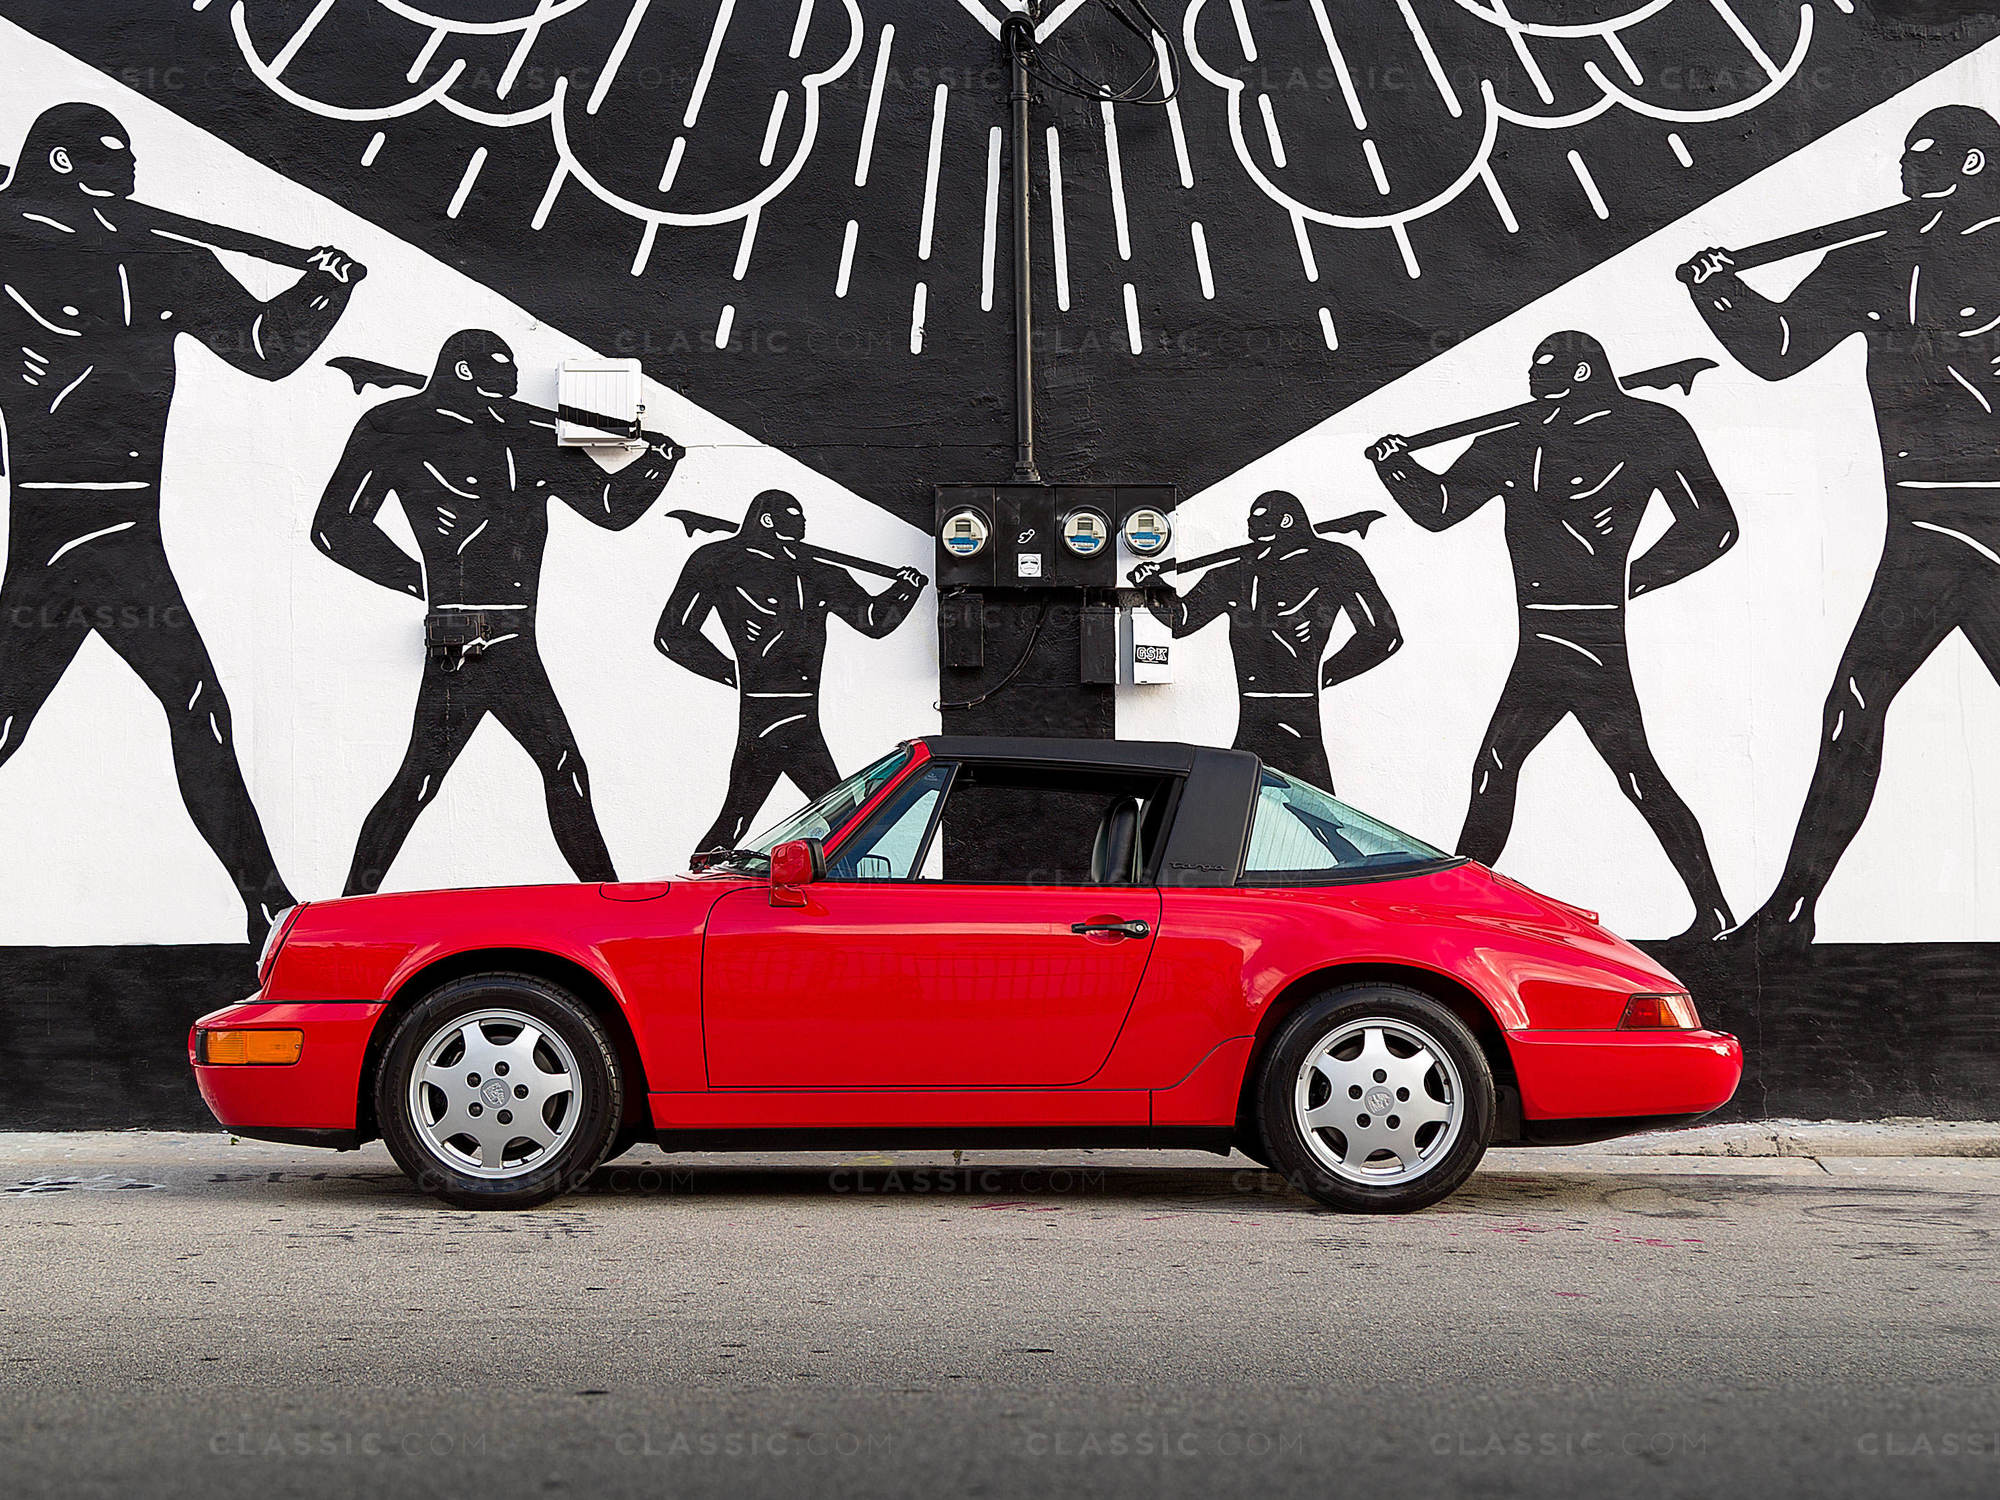 This Porsche promises a lifetime of fun driving.